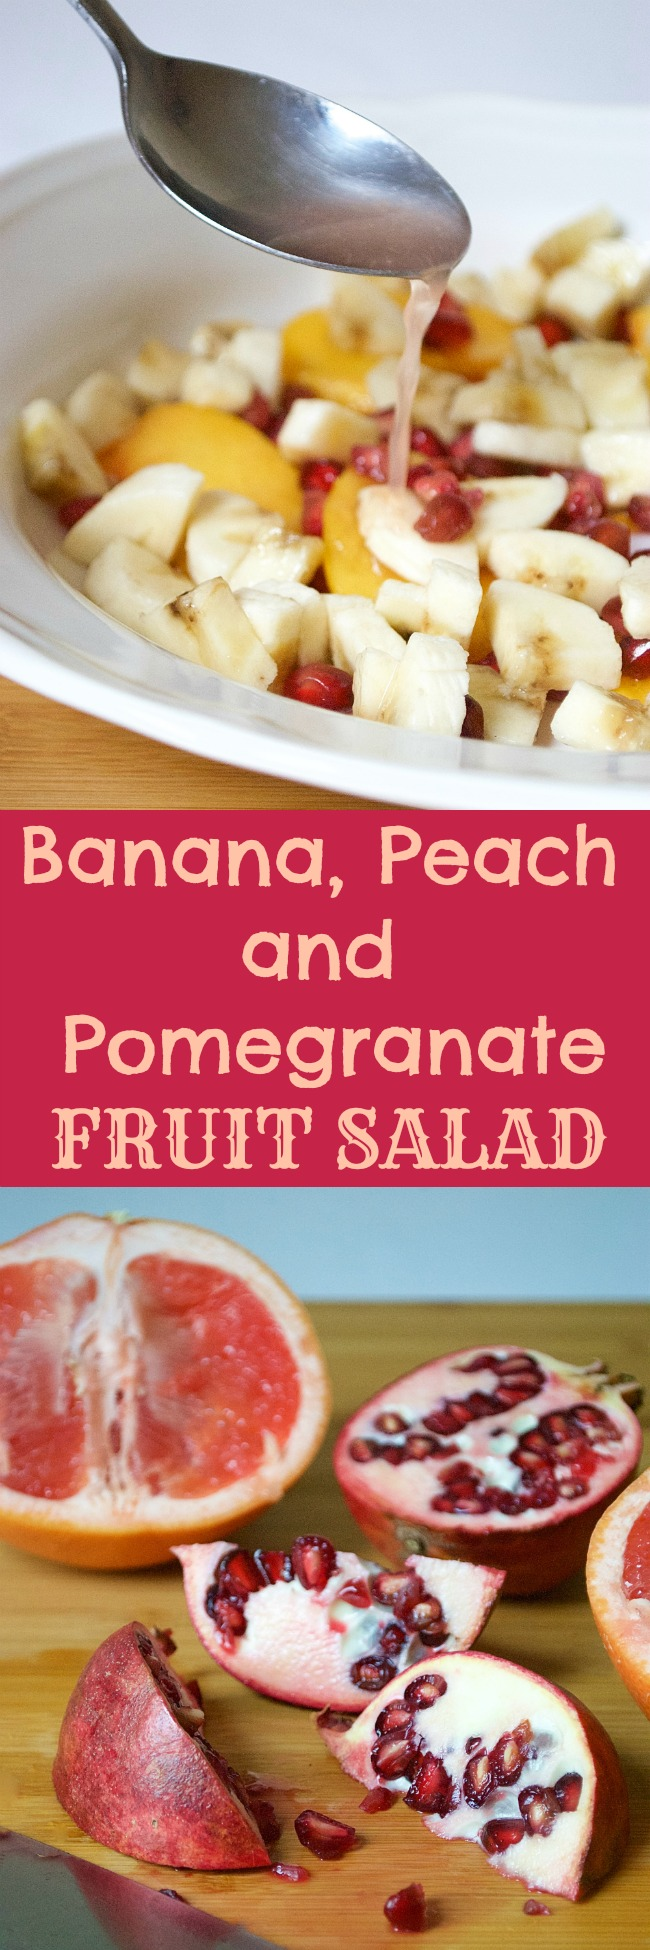 Banana, Peach and Pomegranate Fruit Salad. This fruit salad is so delicious and refreshing- not to mention versatile! Try using as a topping for yogurt or simply on its own for a healthy boost!